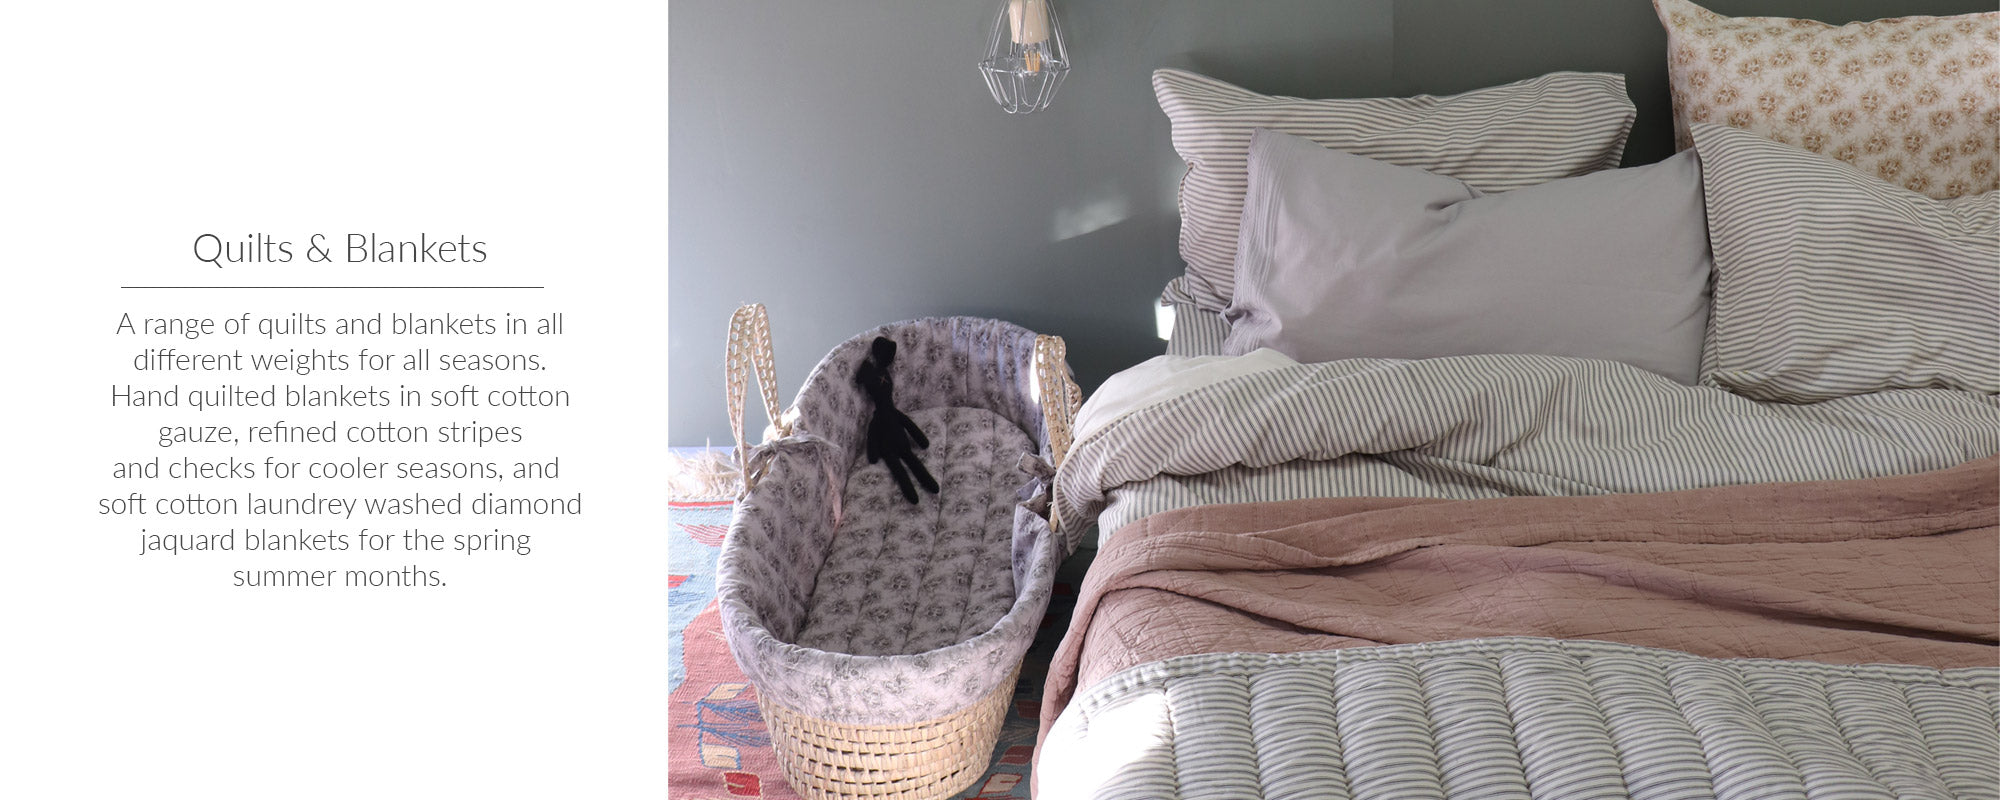 camomile london quilts and blankets